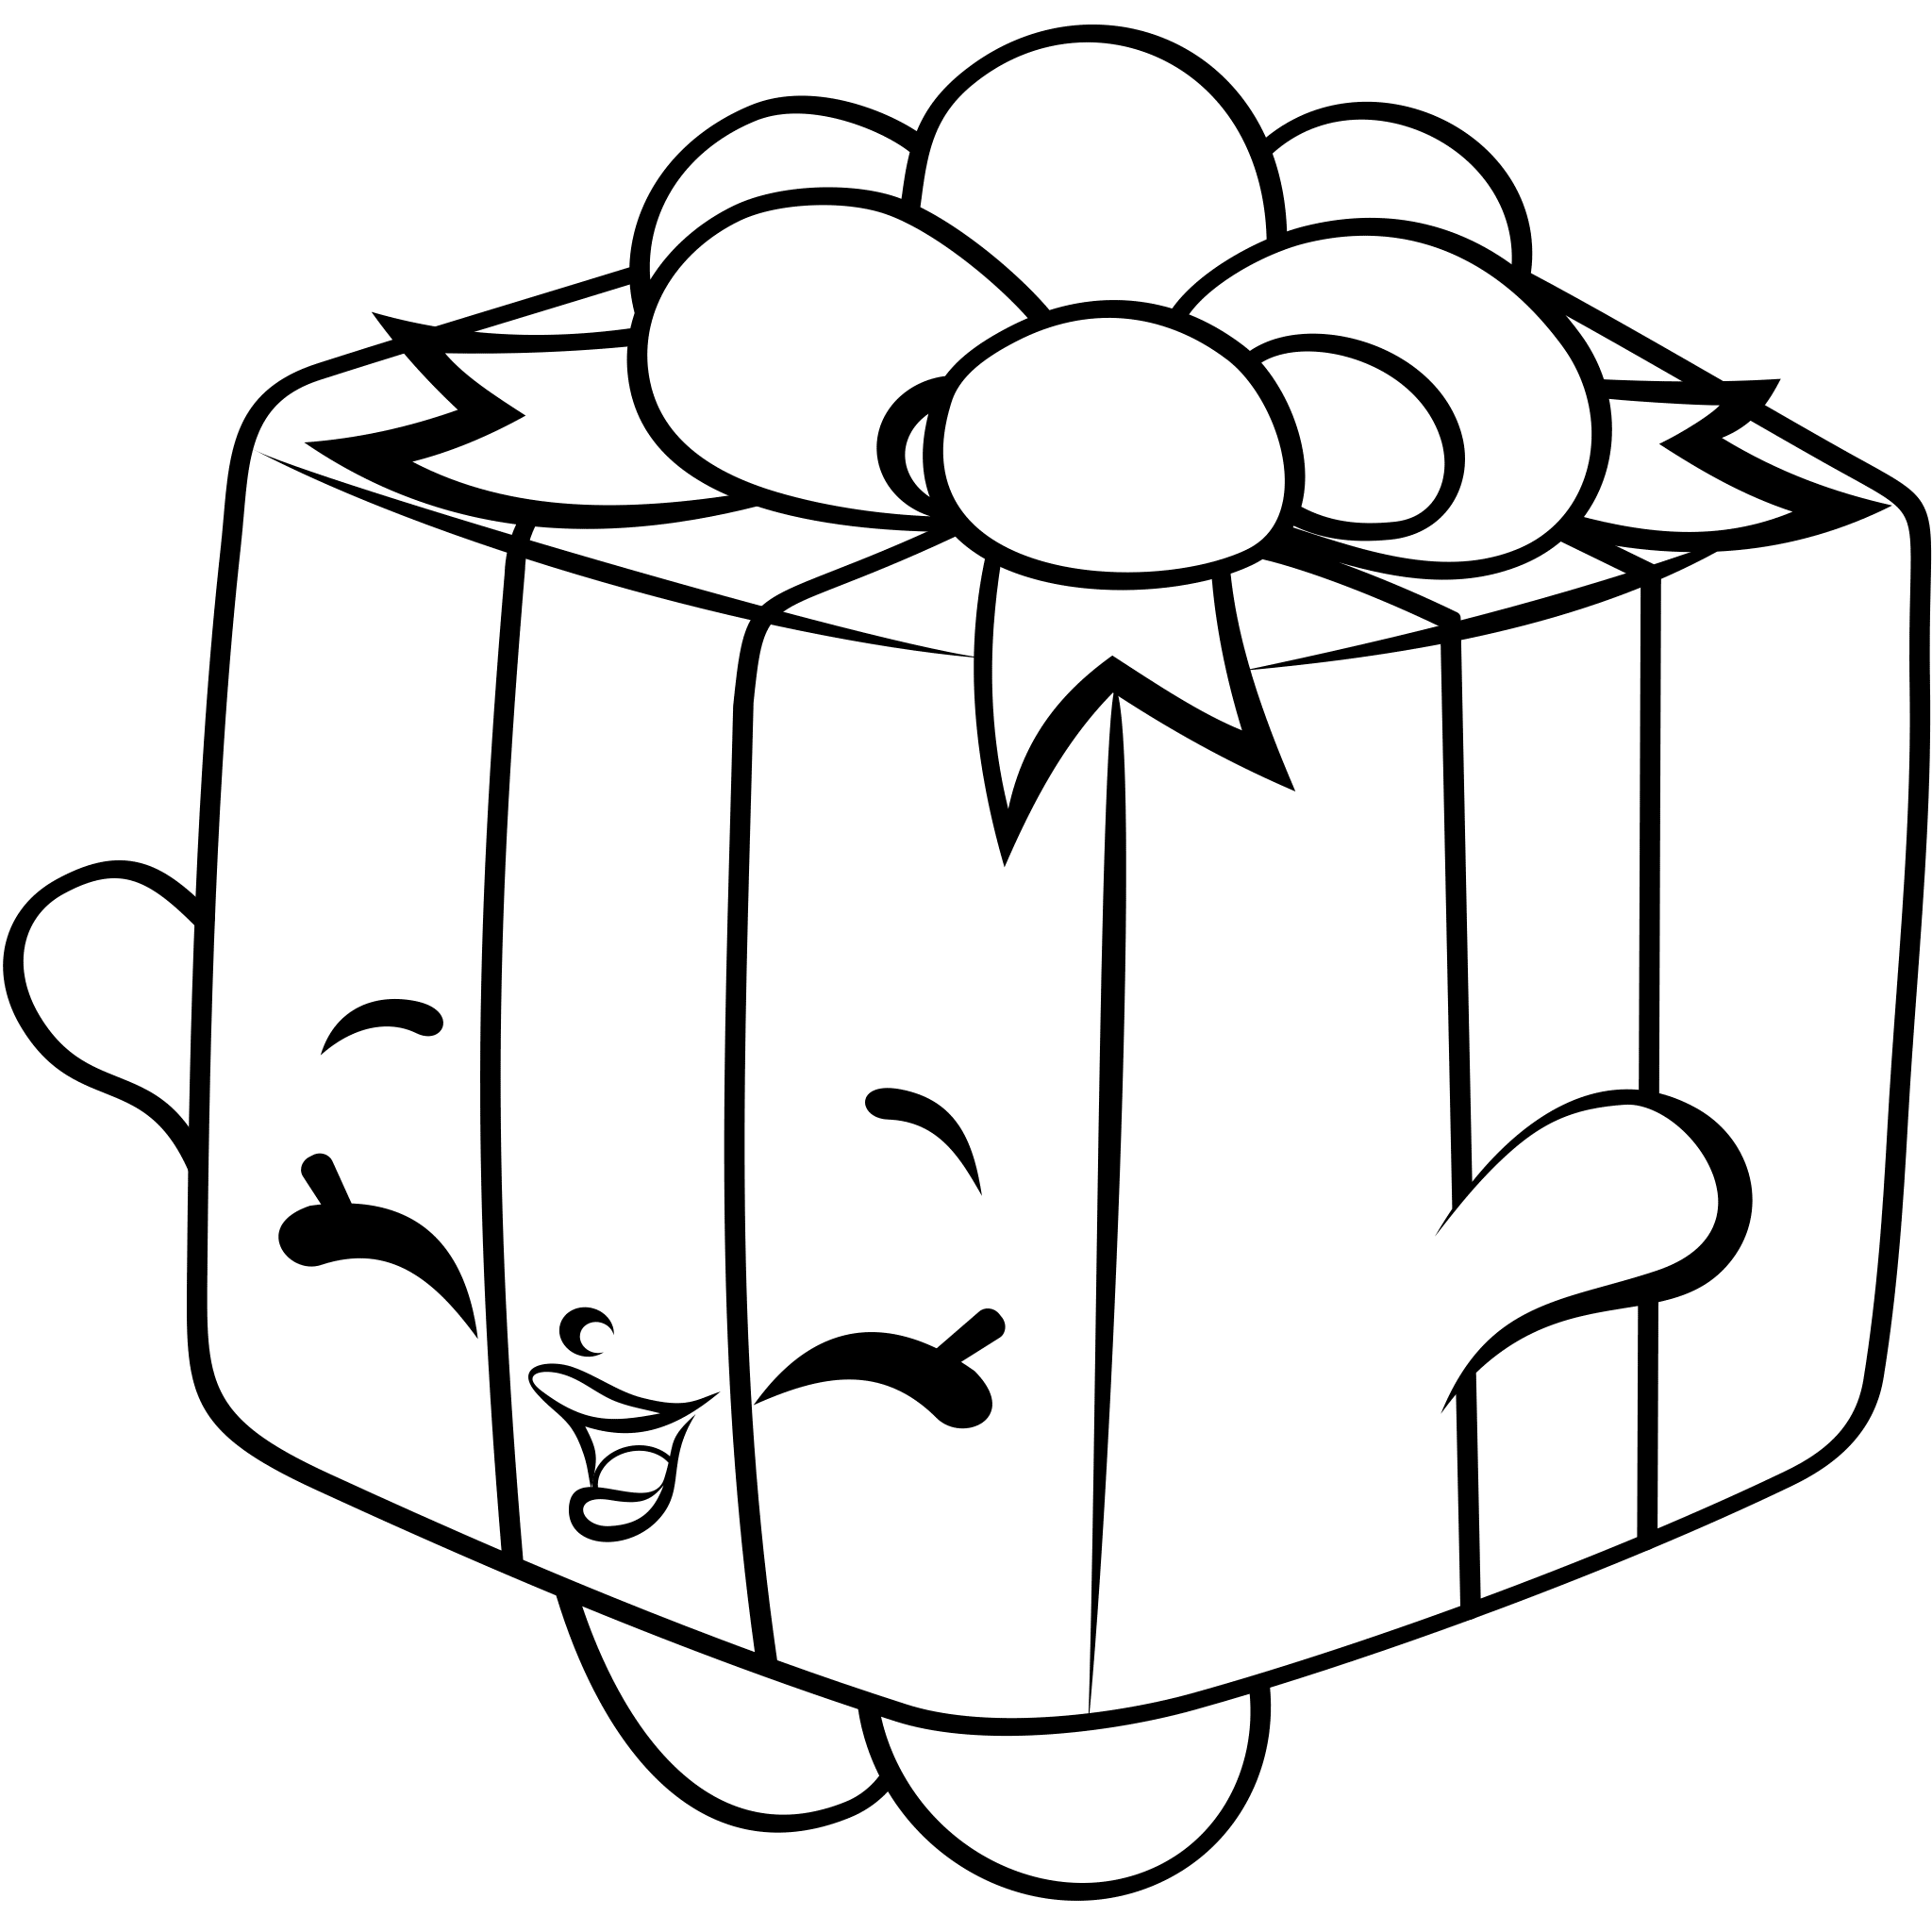 shopkins coloring pages to print free shopkins coloring pages best coloring pages for kids coloring free pages shopkins print to